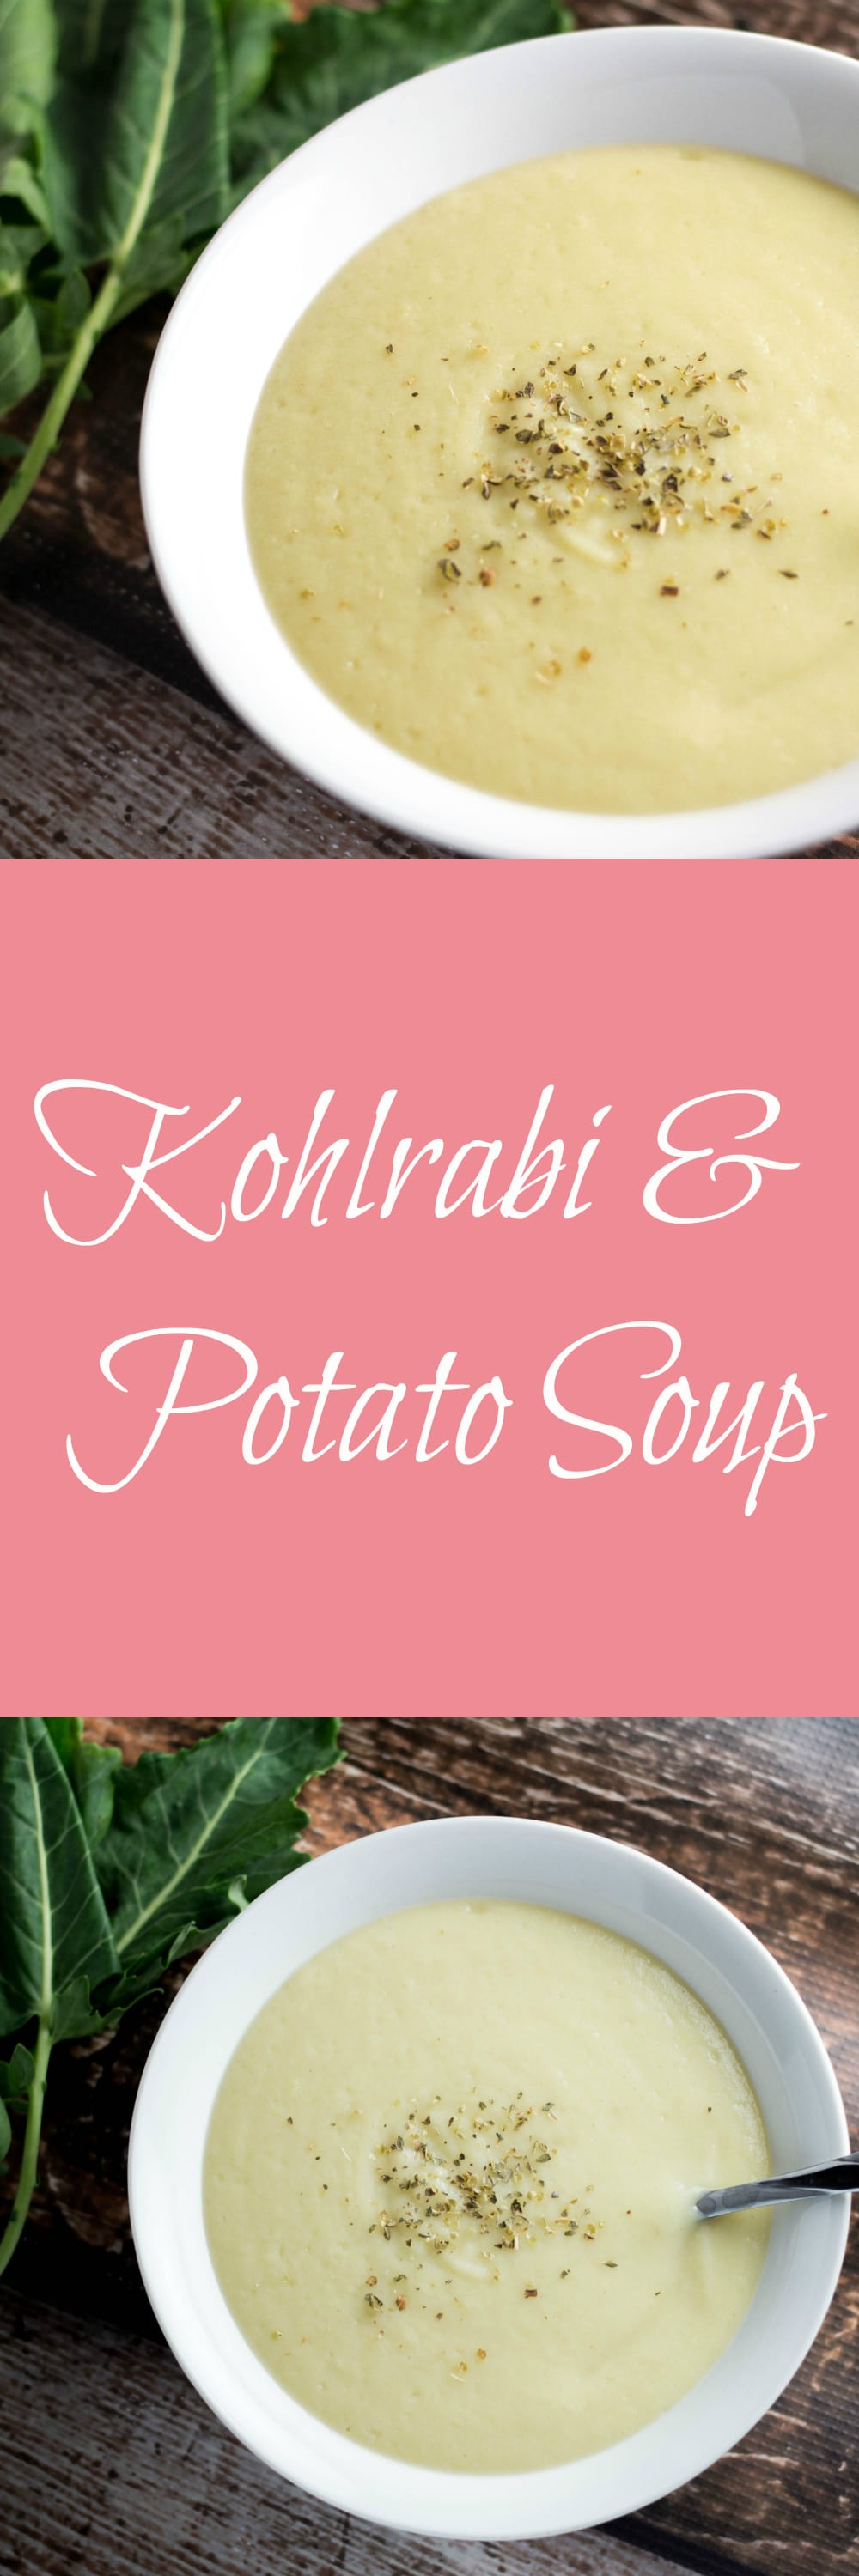 Kohlrabi and Potato Soup! Perfect for the winter and fighting off colds!  Krollskorner.com